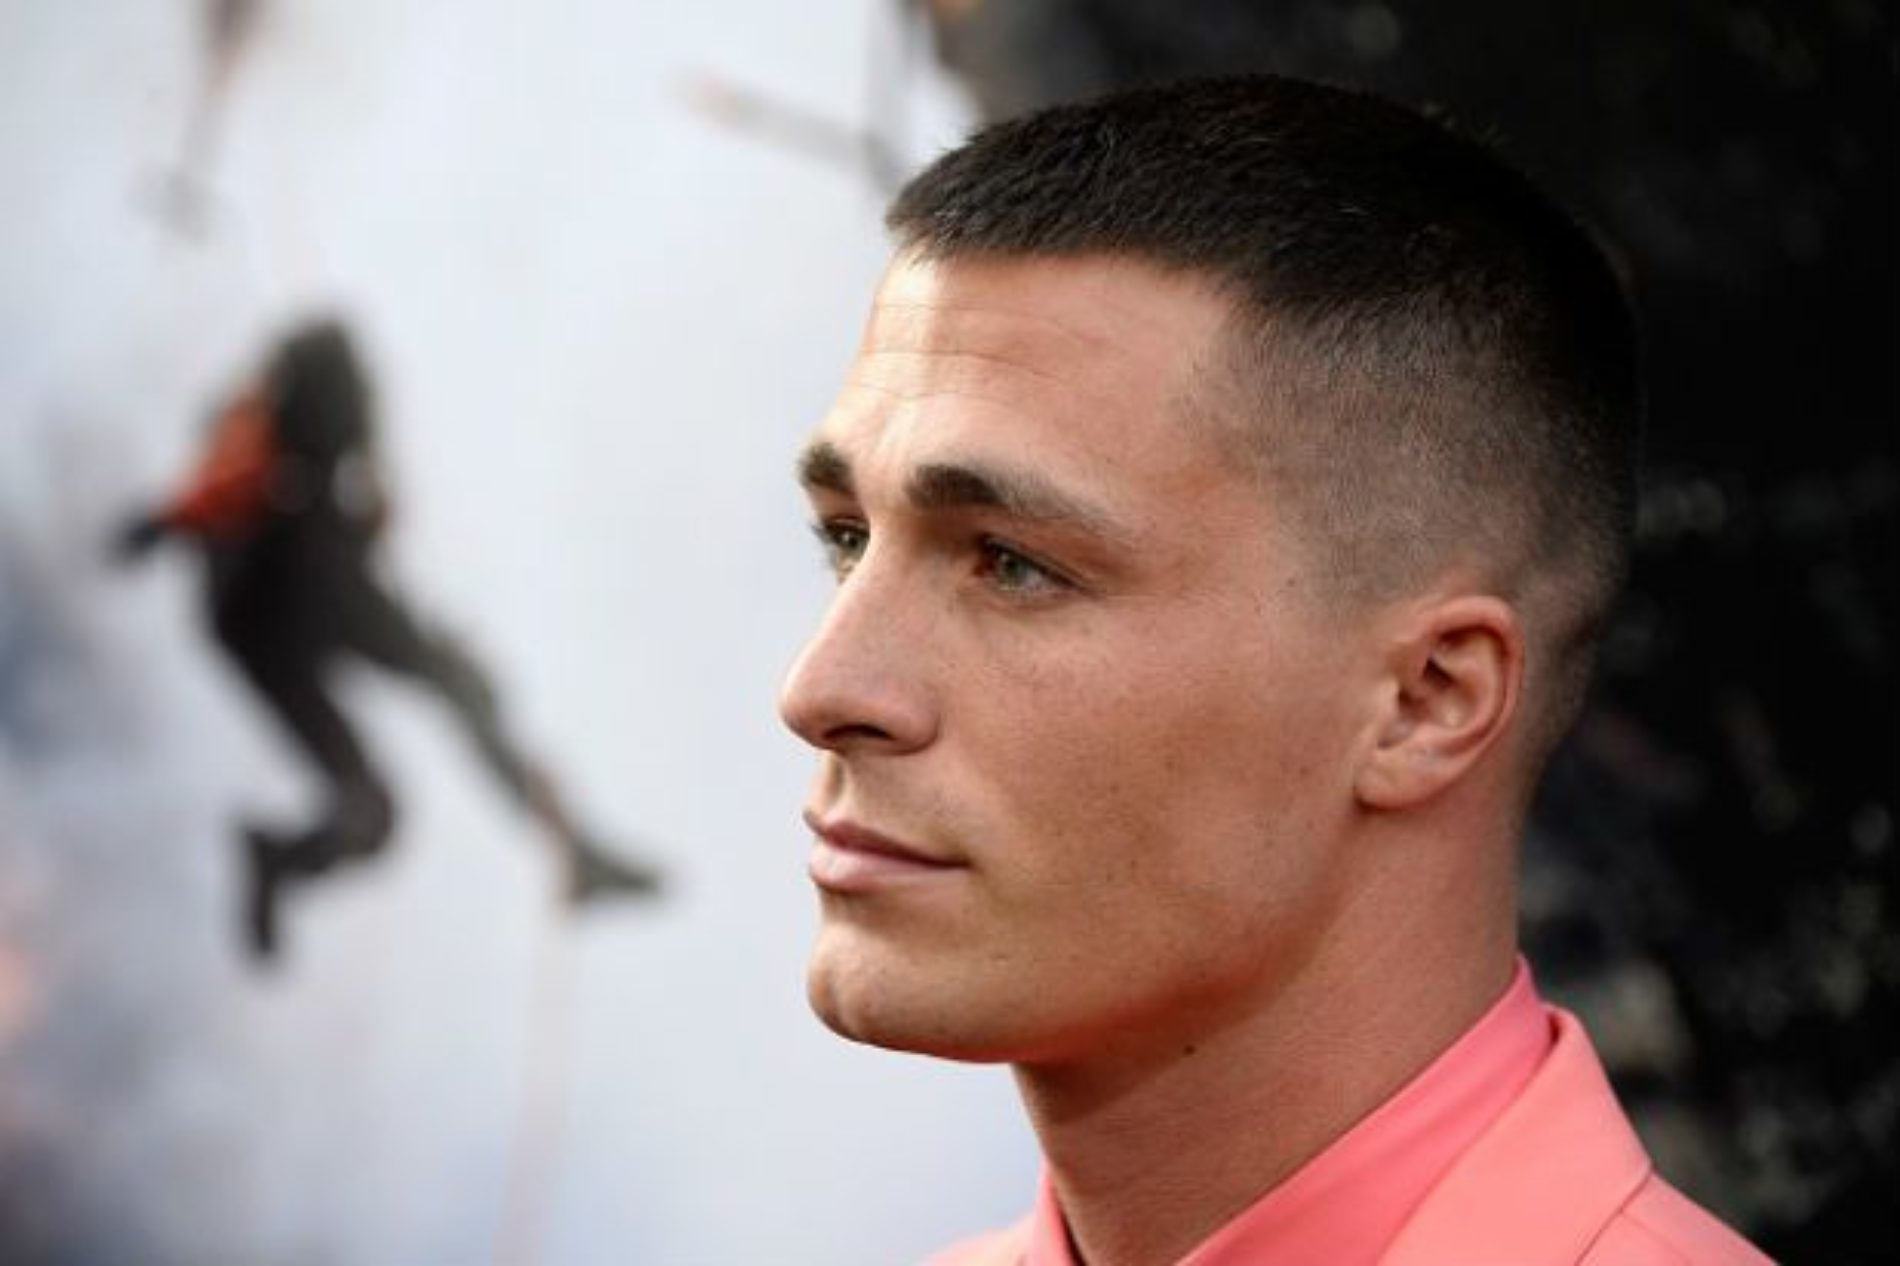 Colton Haynes Officially Comes Out: 'It Took Me So Long to Get to This Point'